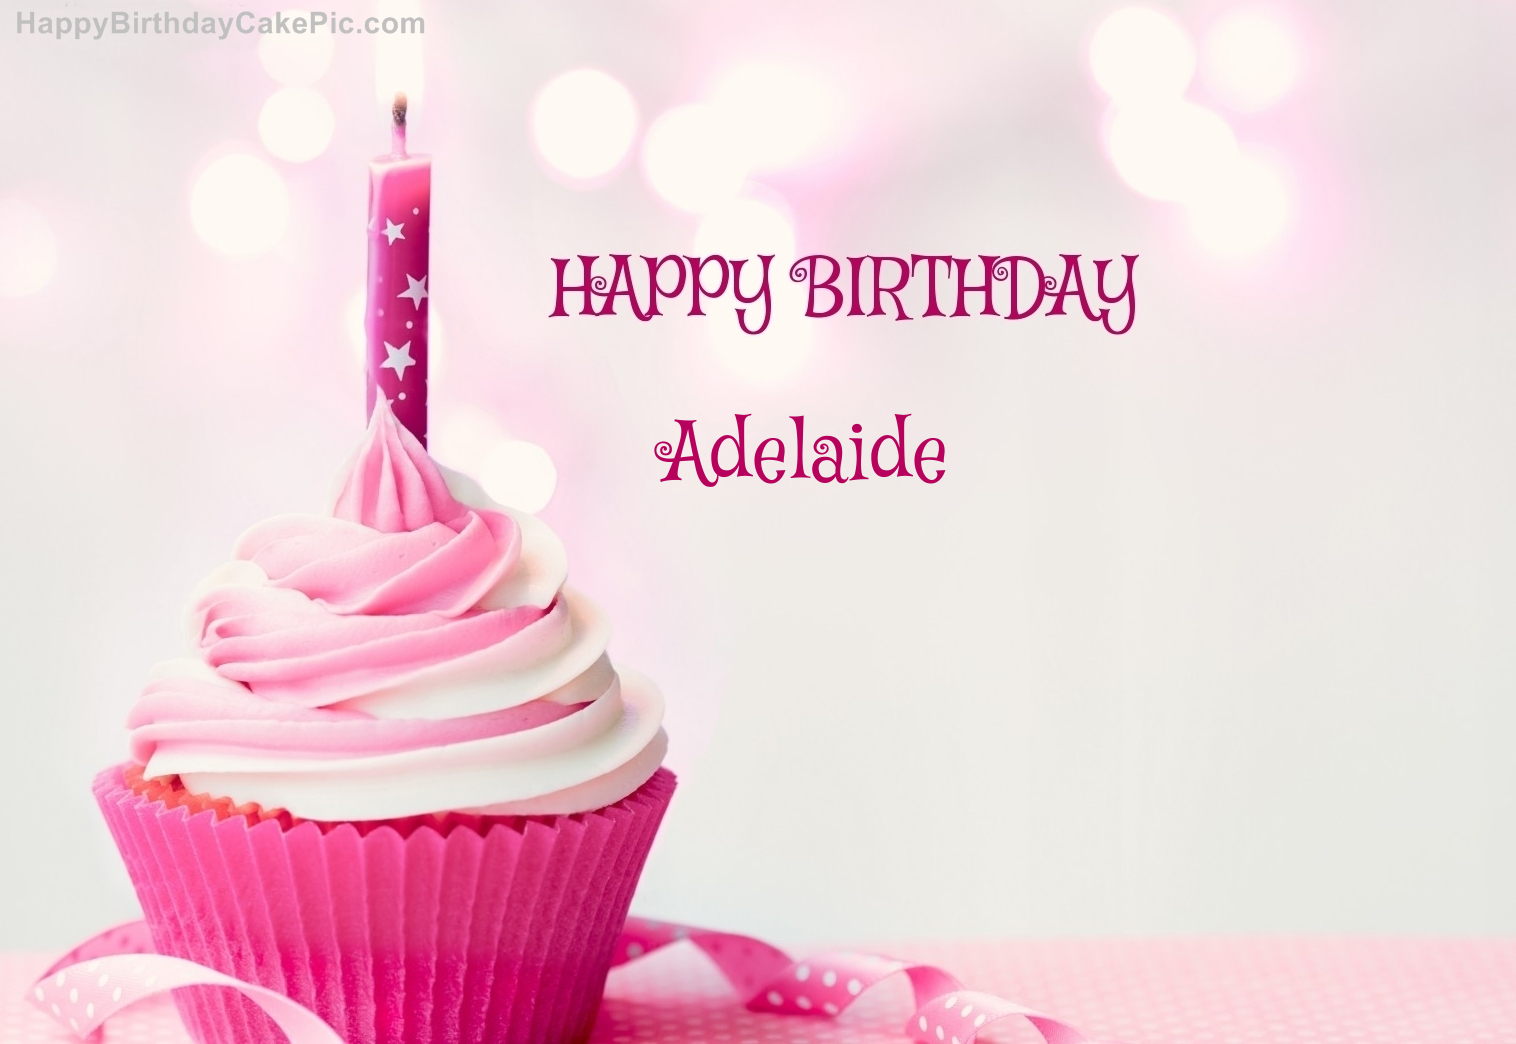 happy birthday cupcake candle pink cake for adelaide on birthday cake in adelaide